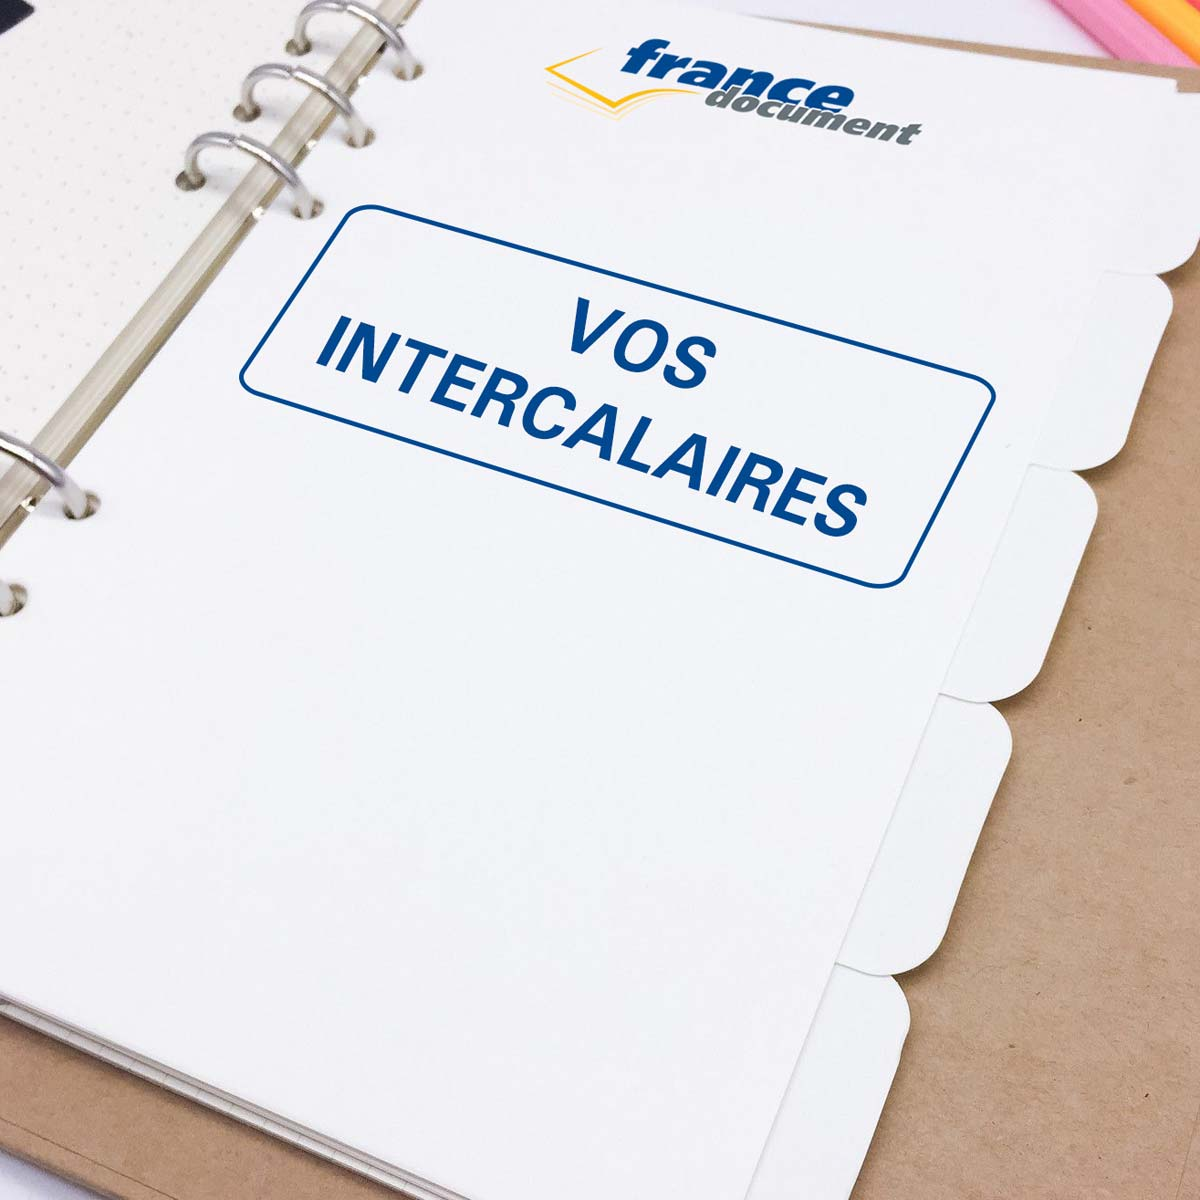 Intercalaires